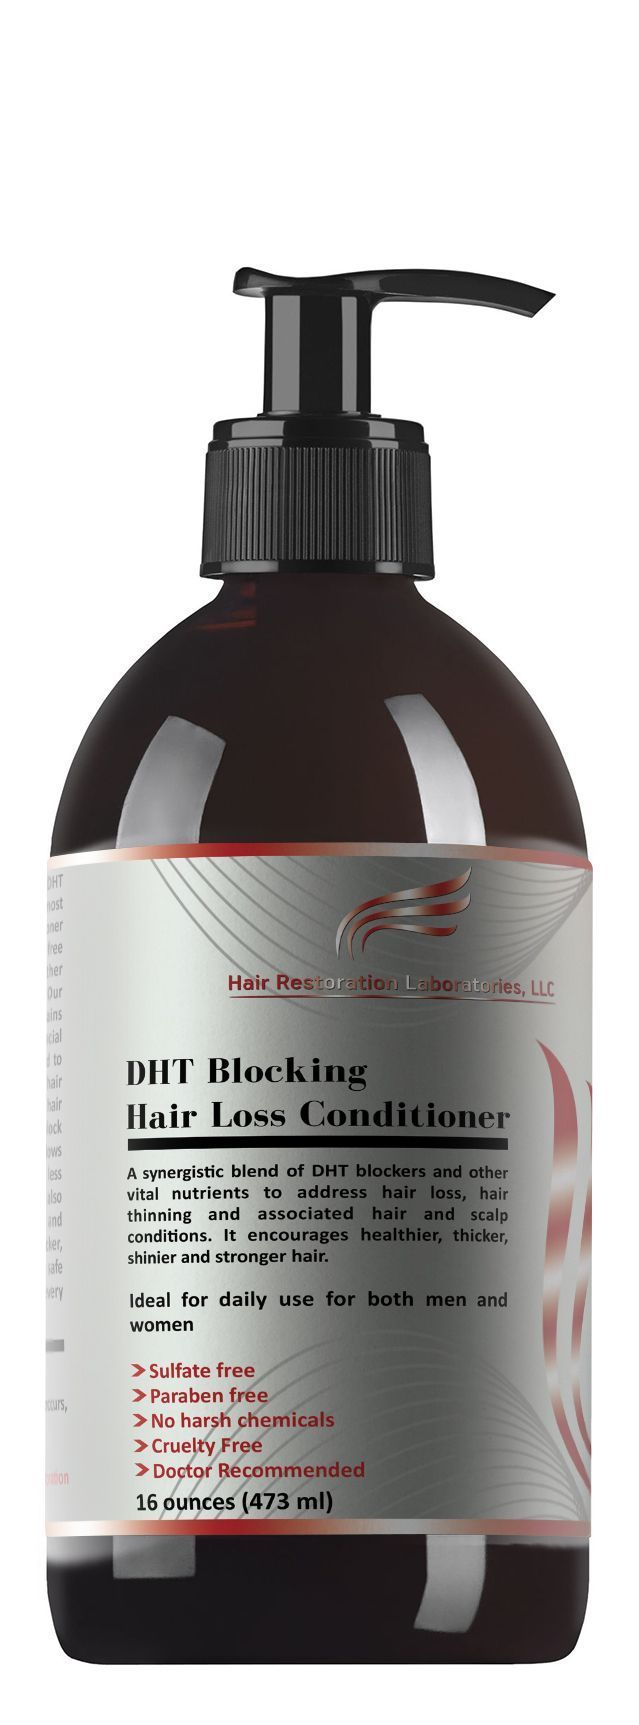 Hair Restoration Laboratories is proud to announce the most effective hair loss conditioner ever developed—the DHT Blocking Hair Loss Conditioner!  Using the DHT Blocking Hair Loss Shampoo along the DHT Blocking Hair Loss Conditioner provides the ultimate